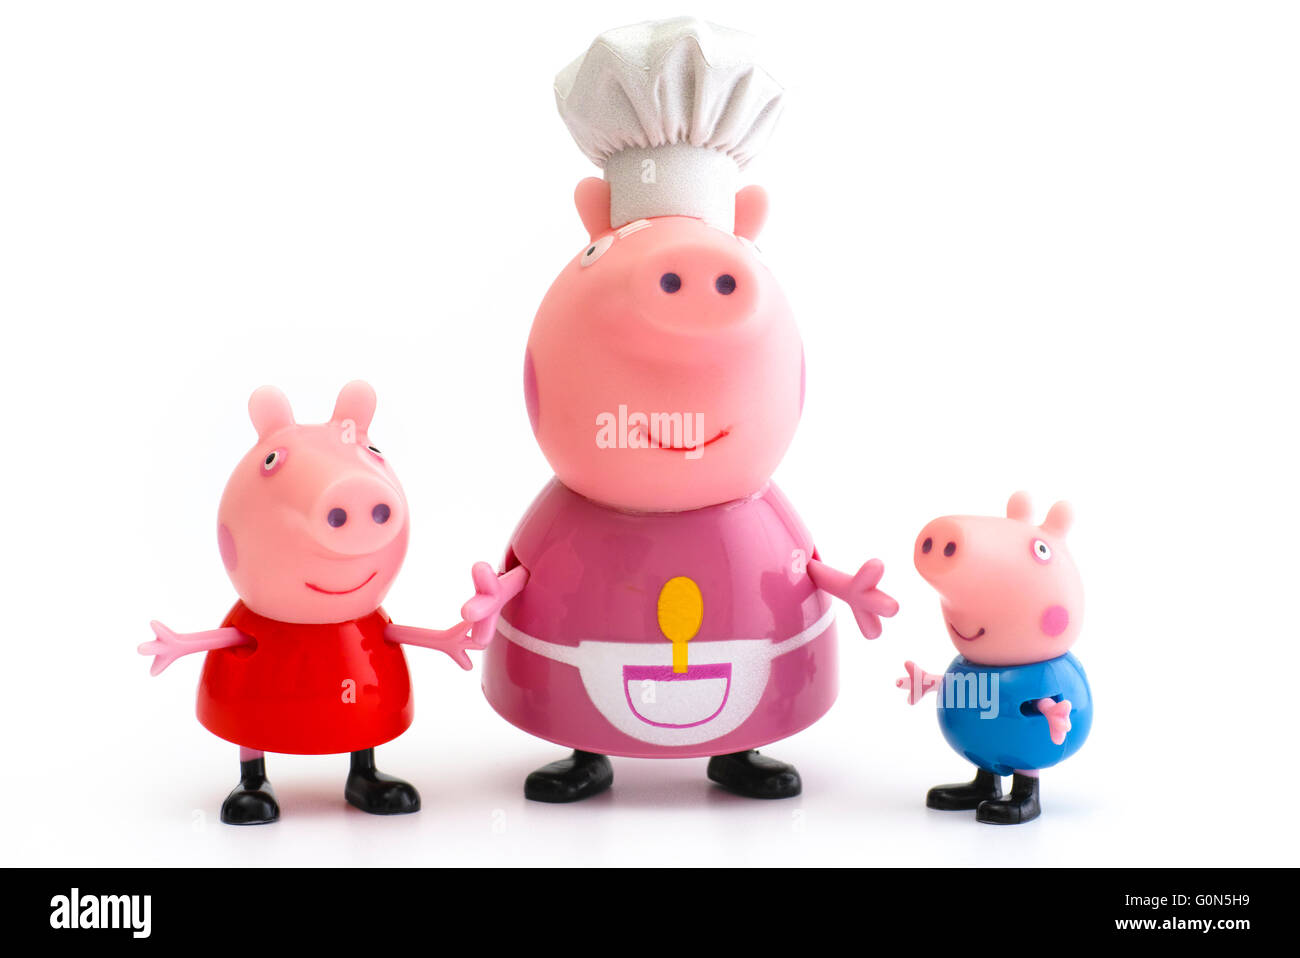 peppa pig characters stock photos peppa pig characters stock